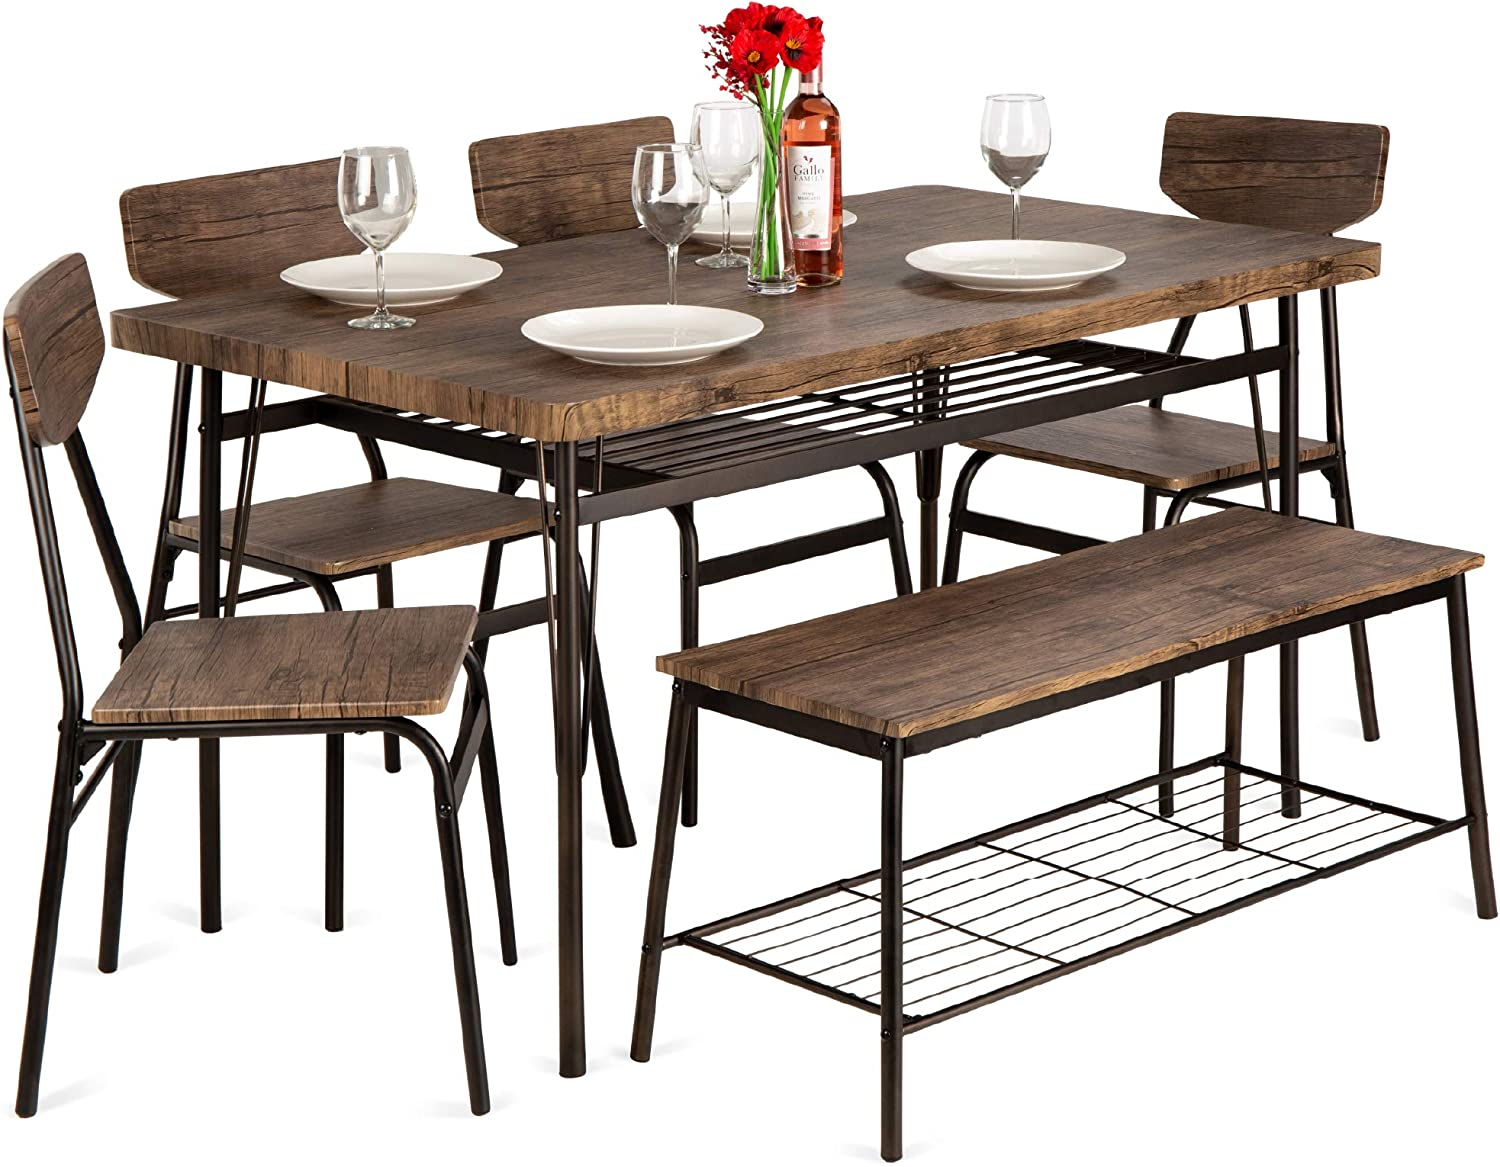 Best Choice Products 9 Piece 9in Wooden Modern Dining Set for Home,  Kitchen, Dining Room w/Storage Racks, Rectangular Table, Bench, 9 Chairs,  Steel ...